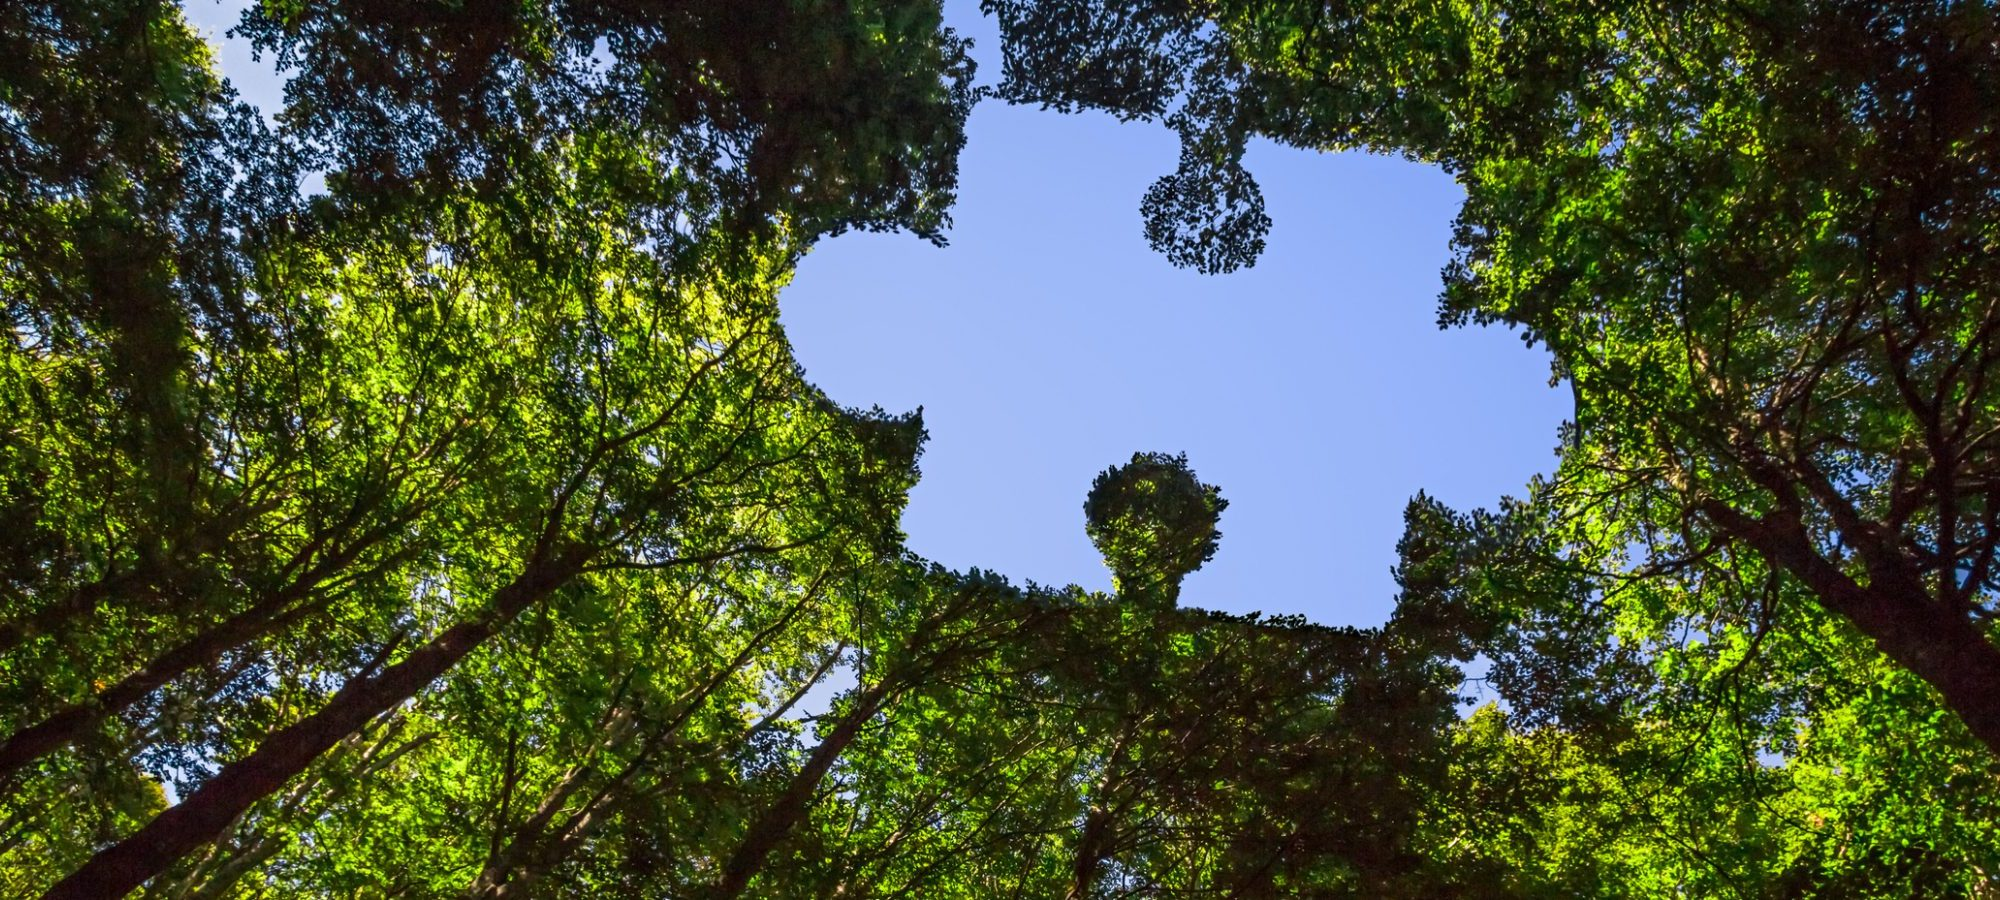 The trees in the sky with a giant outline of a puzzle shape gap in the middle reveals the sunny blue sky.